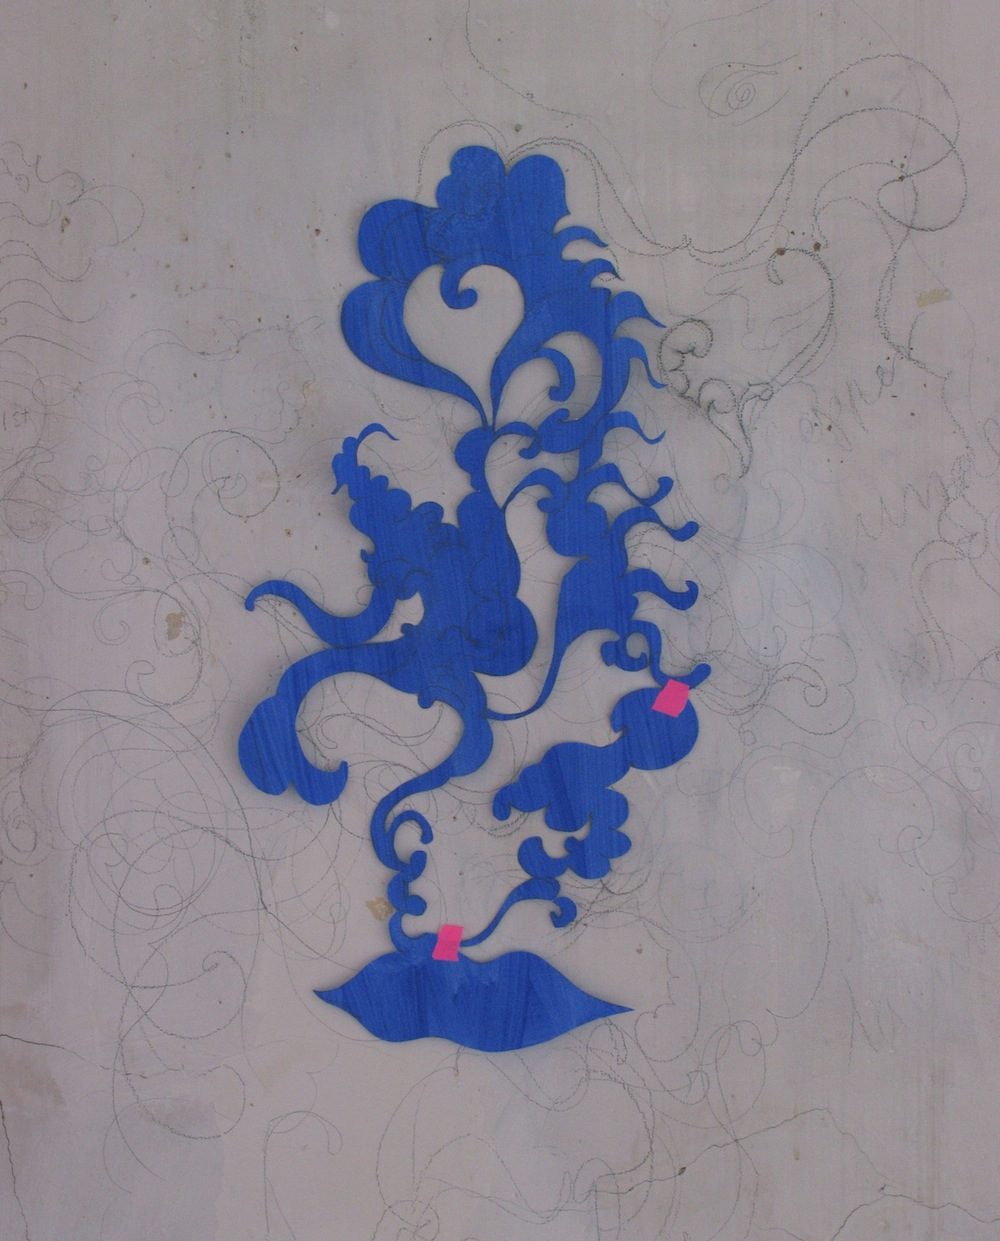 Blue Lips 2007 - acrylic on paper cut out.